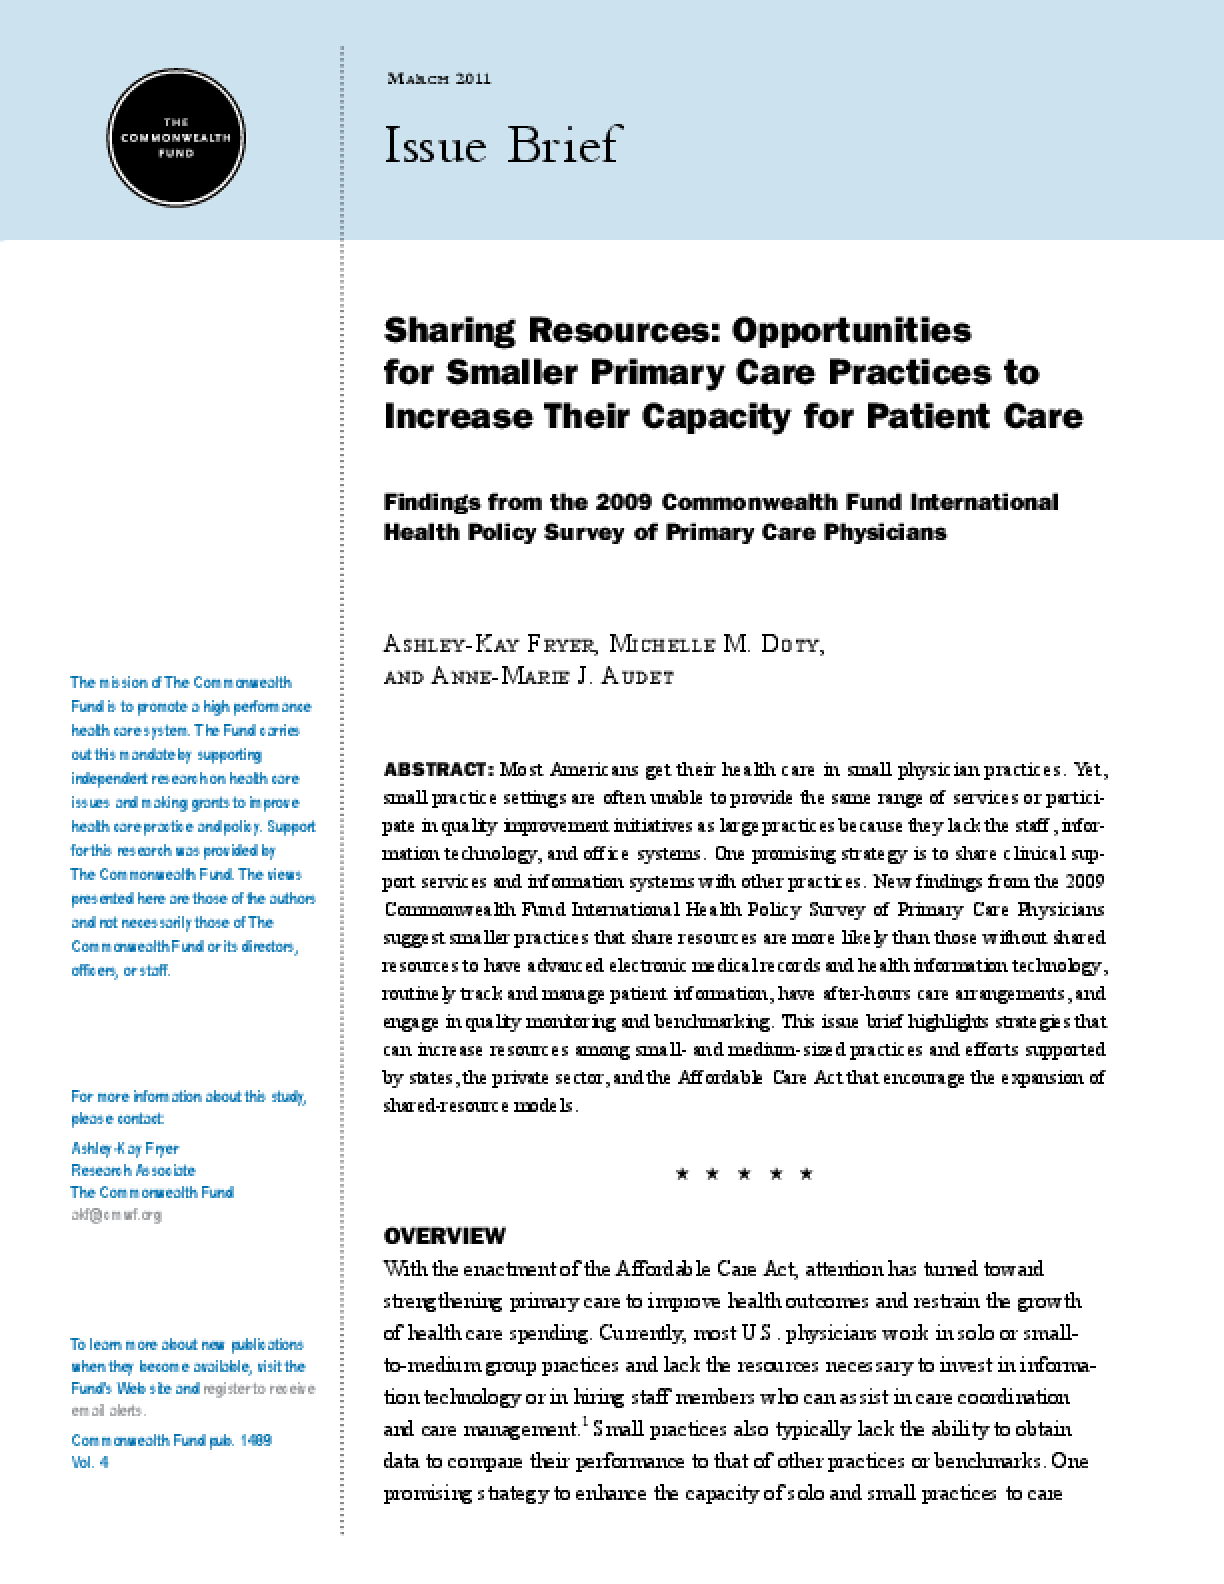 Sharing Resources: Opportunities for Smaller Primary Care Practices to Increase Their Capacity for Patient Care